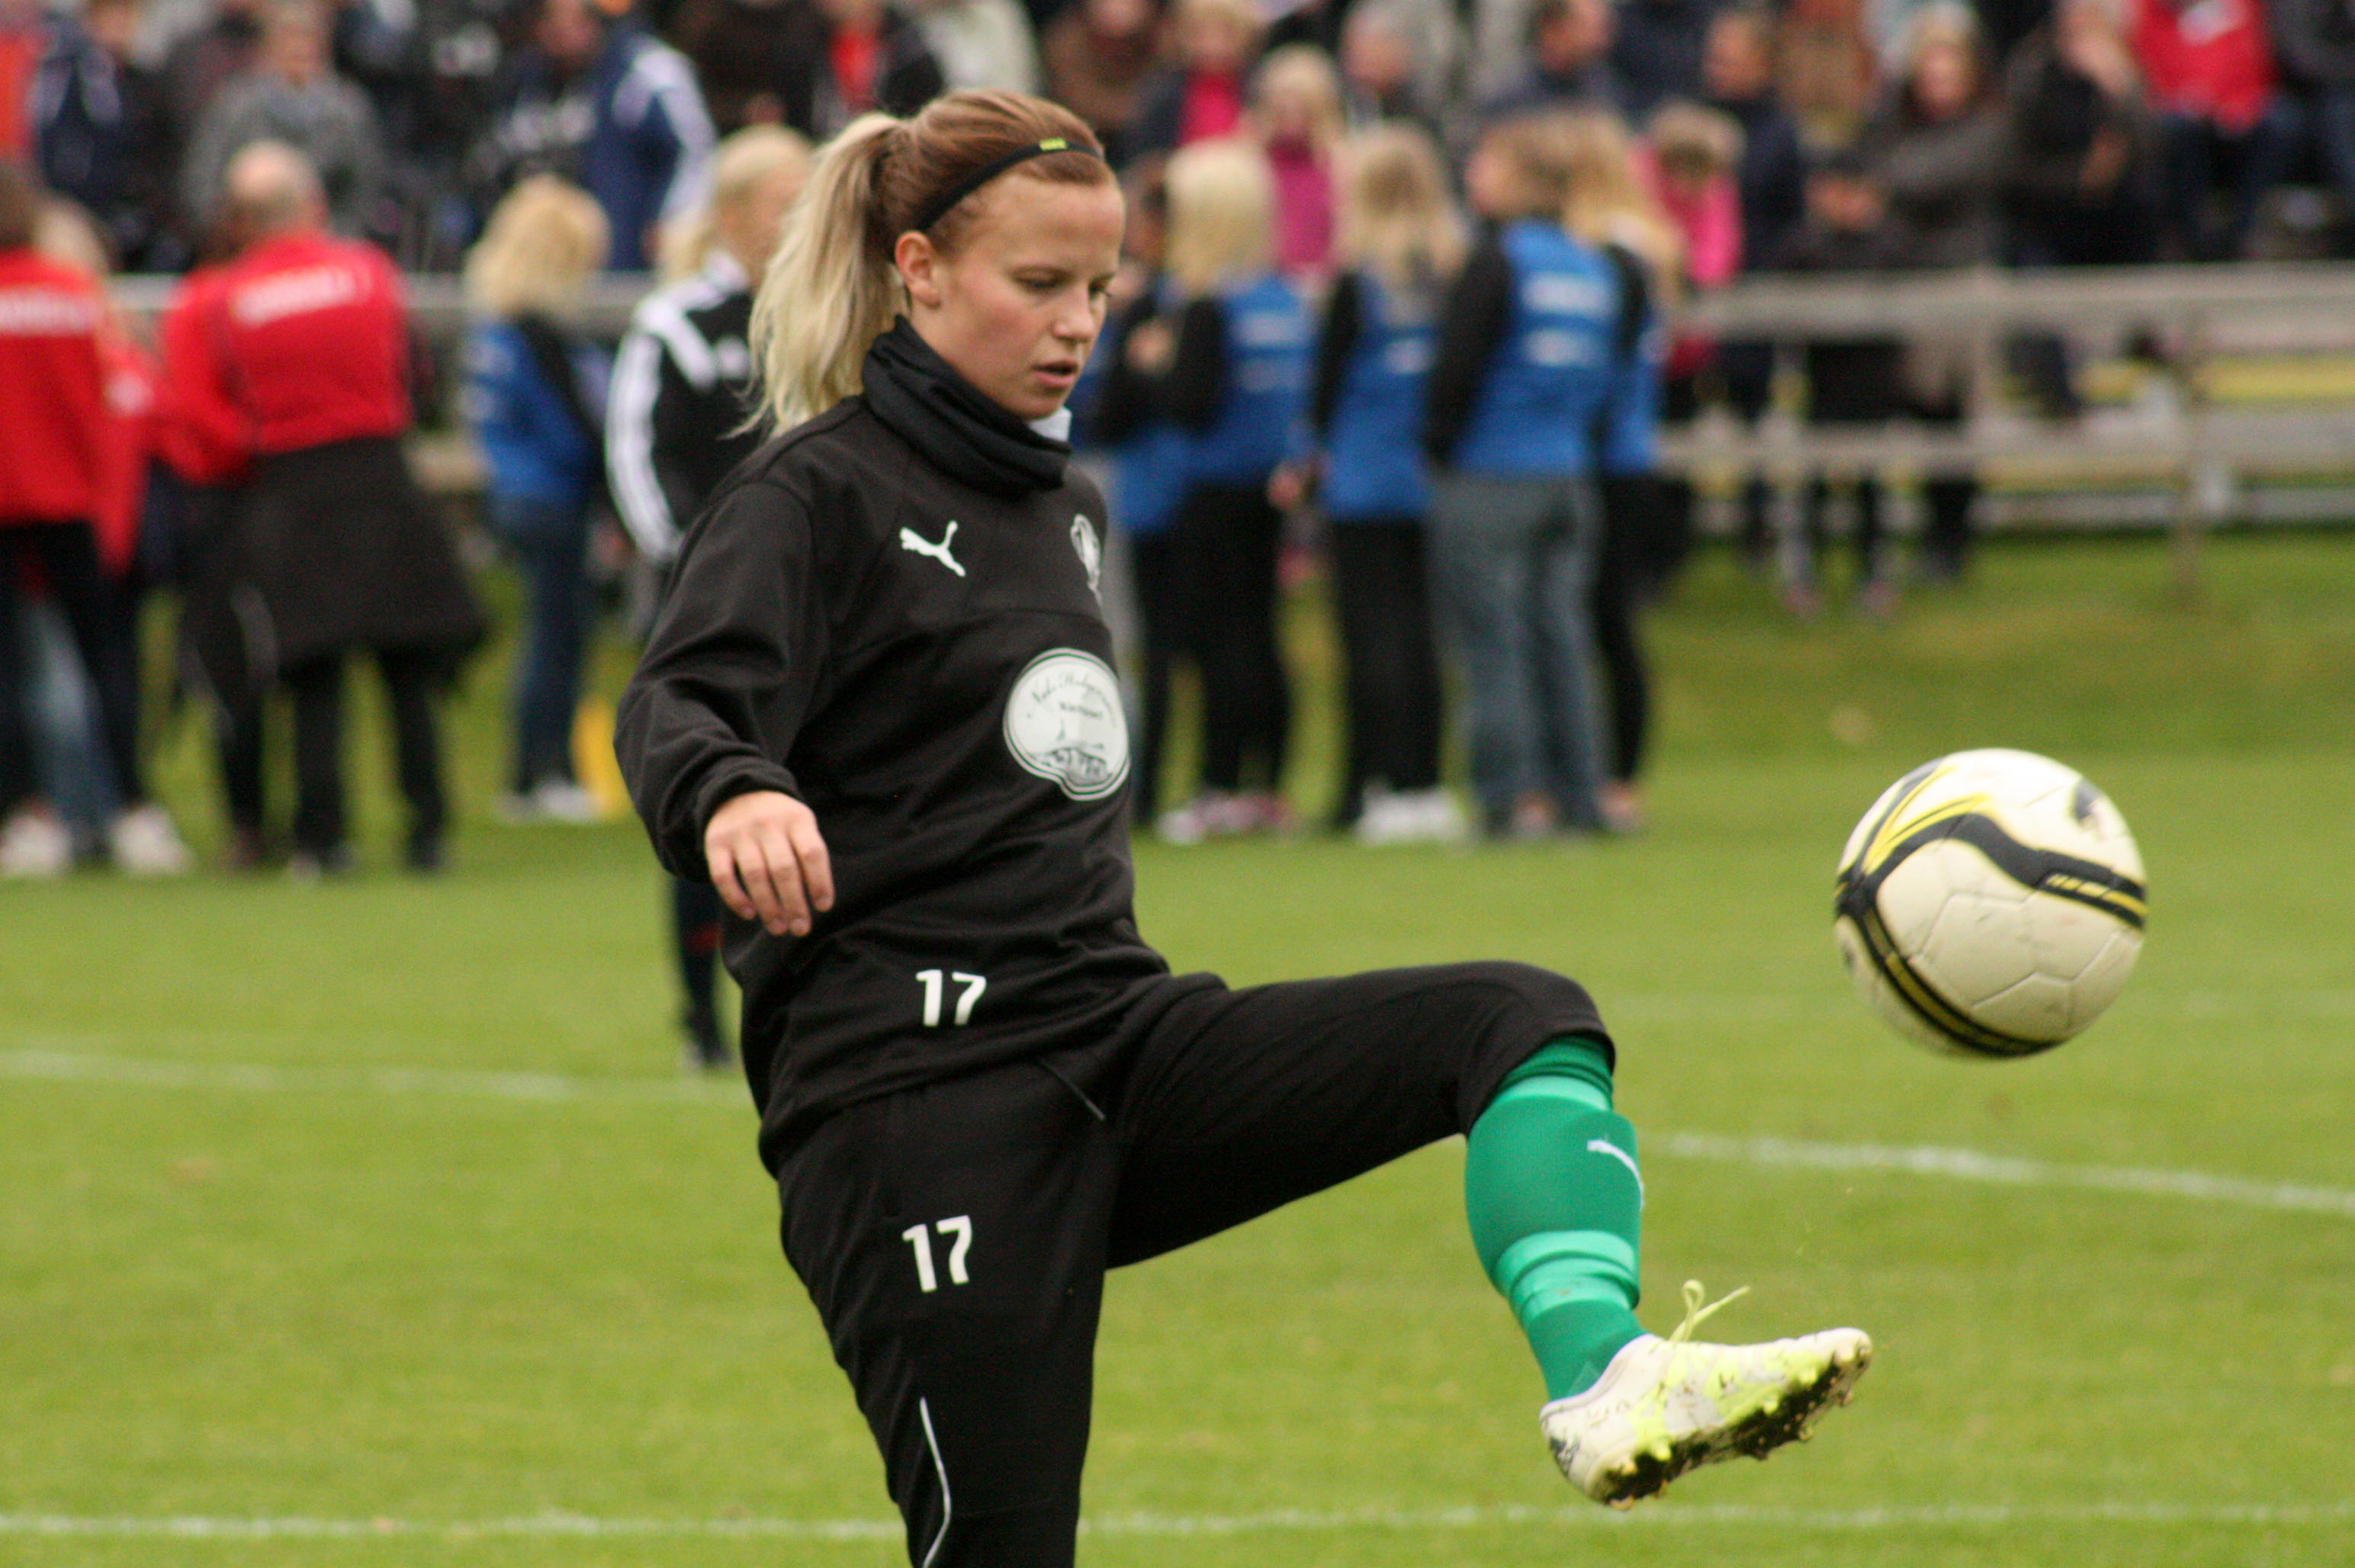 Ostersund fore storklubbar pa europarankning